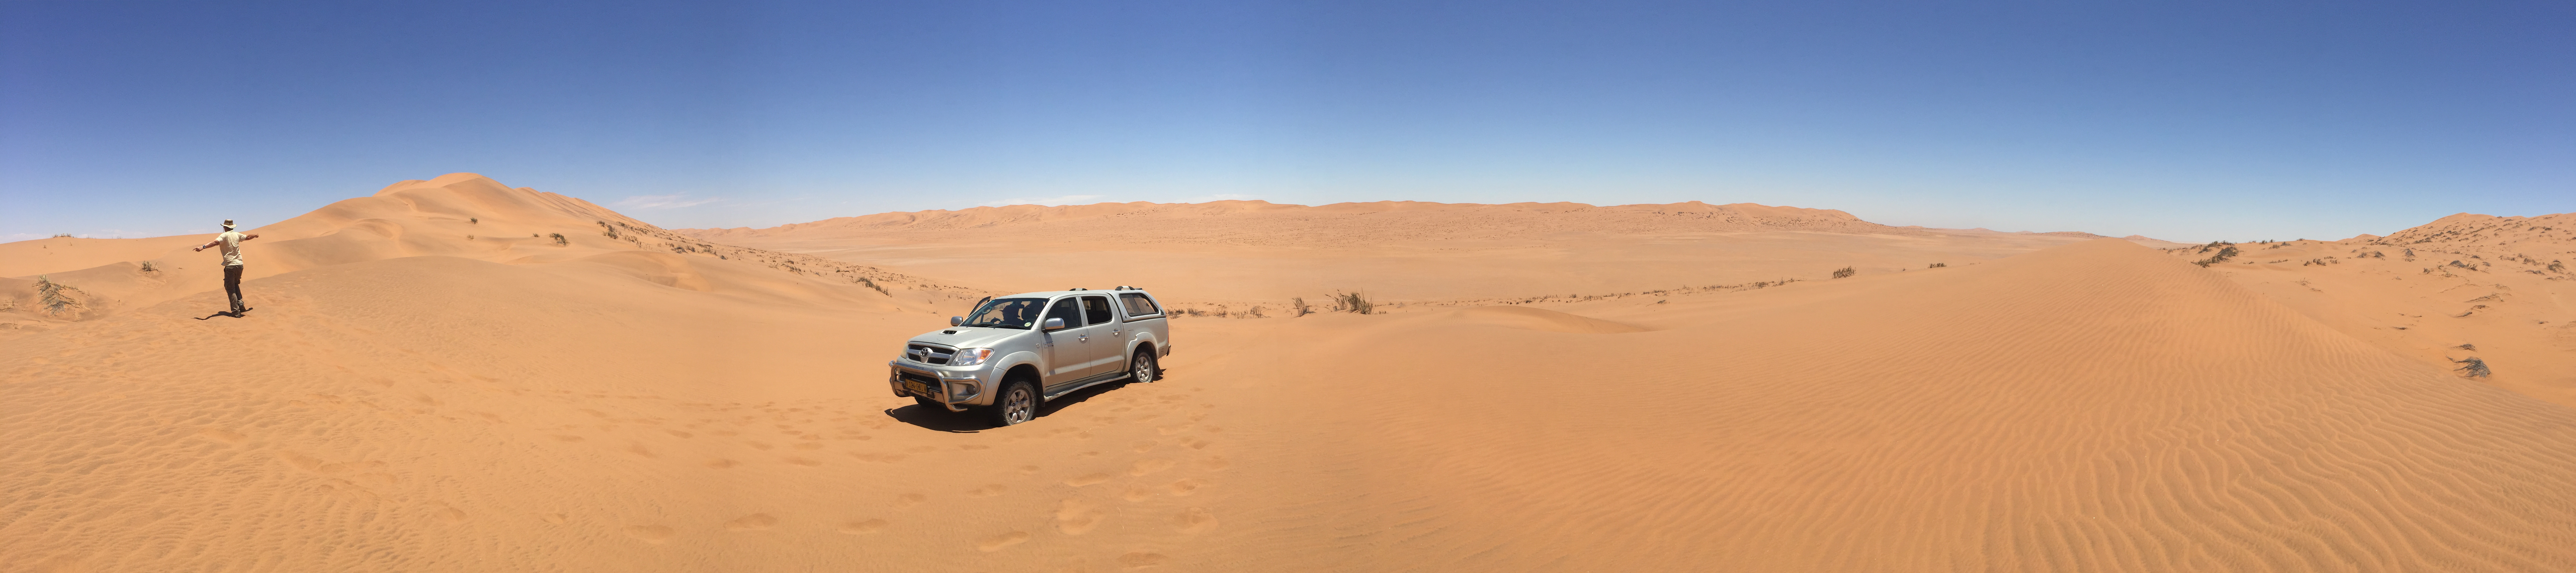 Making the Most of Winter by Doing Fieldwork in Namibia: Robert Logan